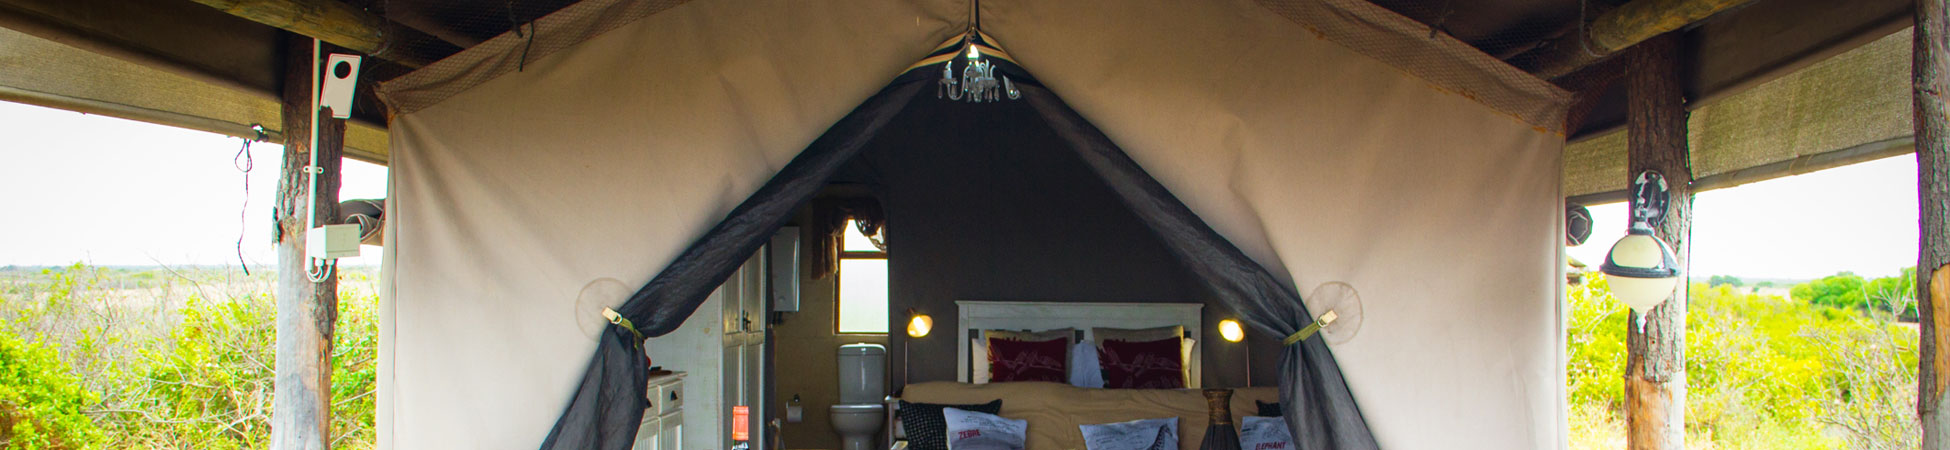 B&B Luxury Tents